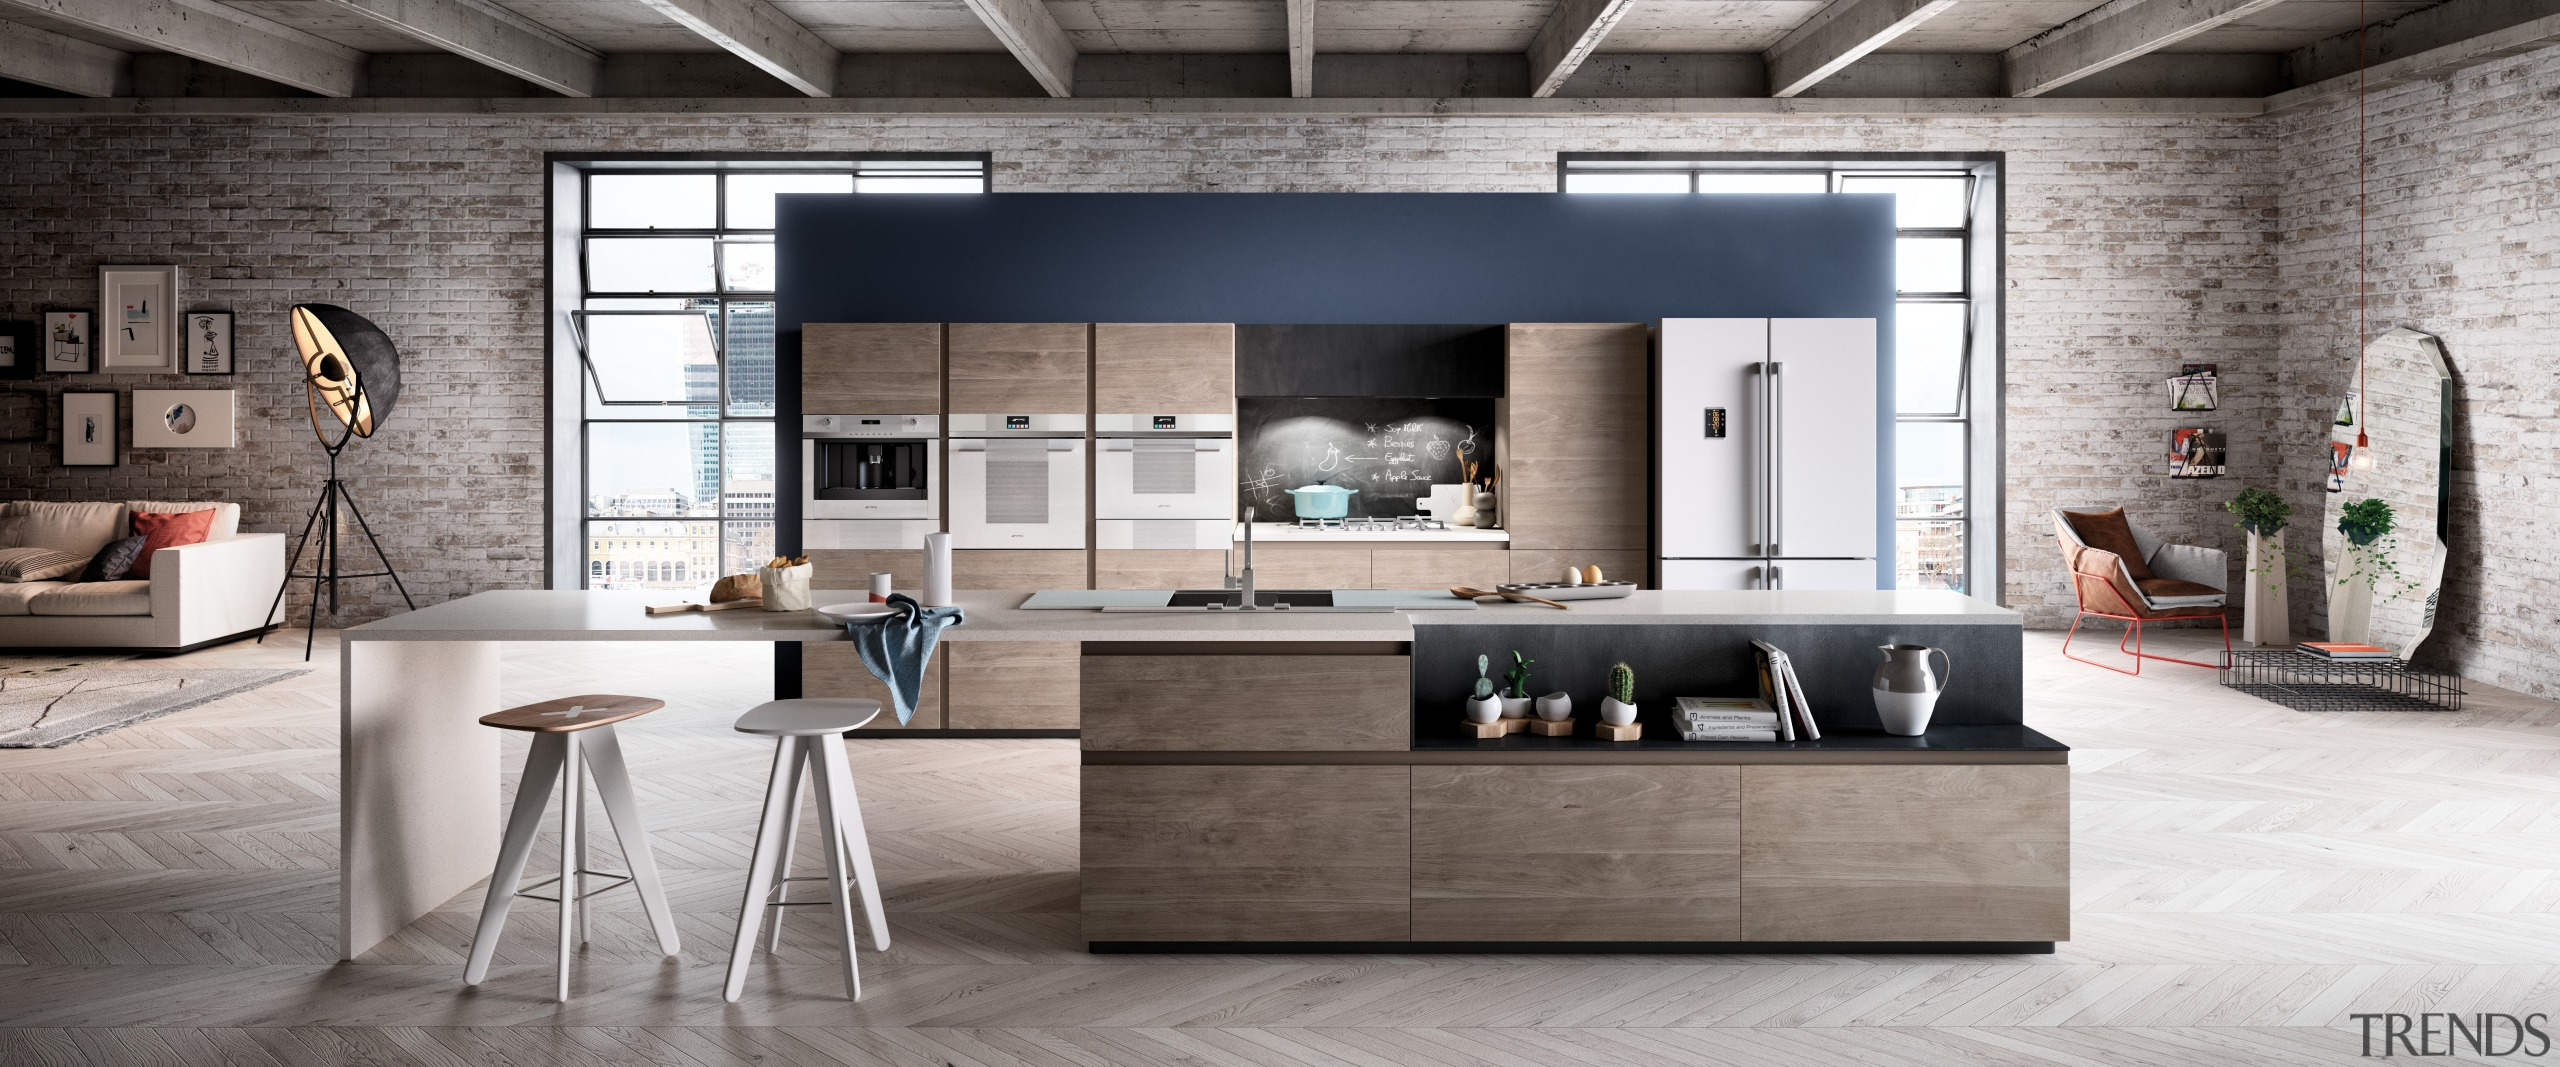 The Linea range features stand-out handles, transparent control furniture, interior design, living room, loft, product design, table, gray